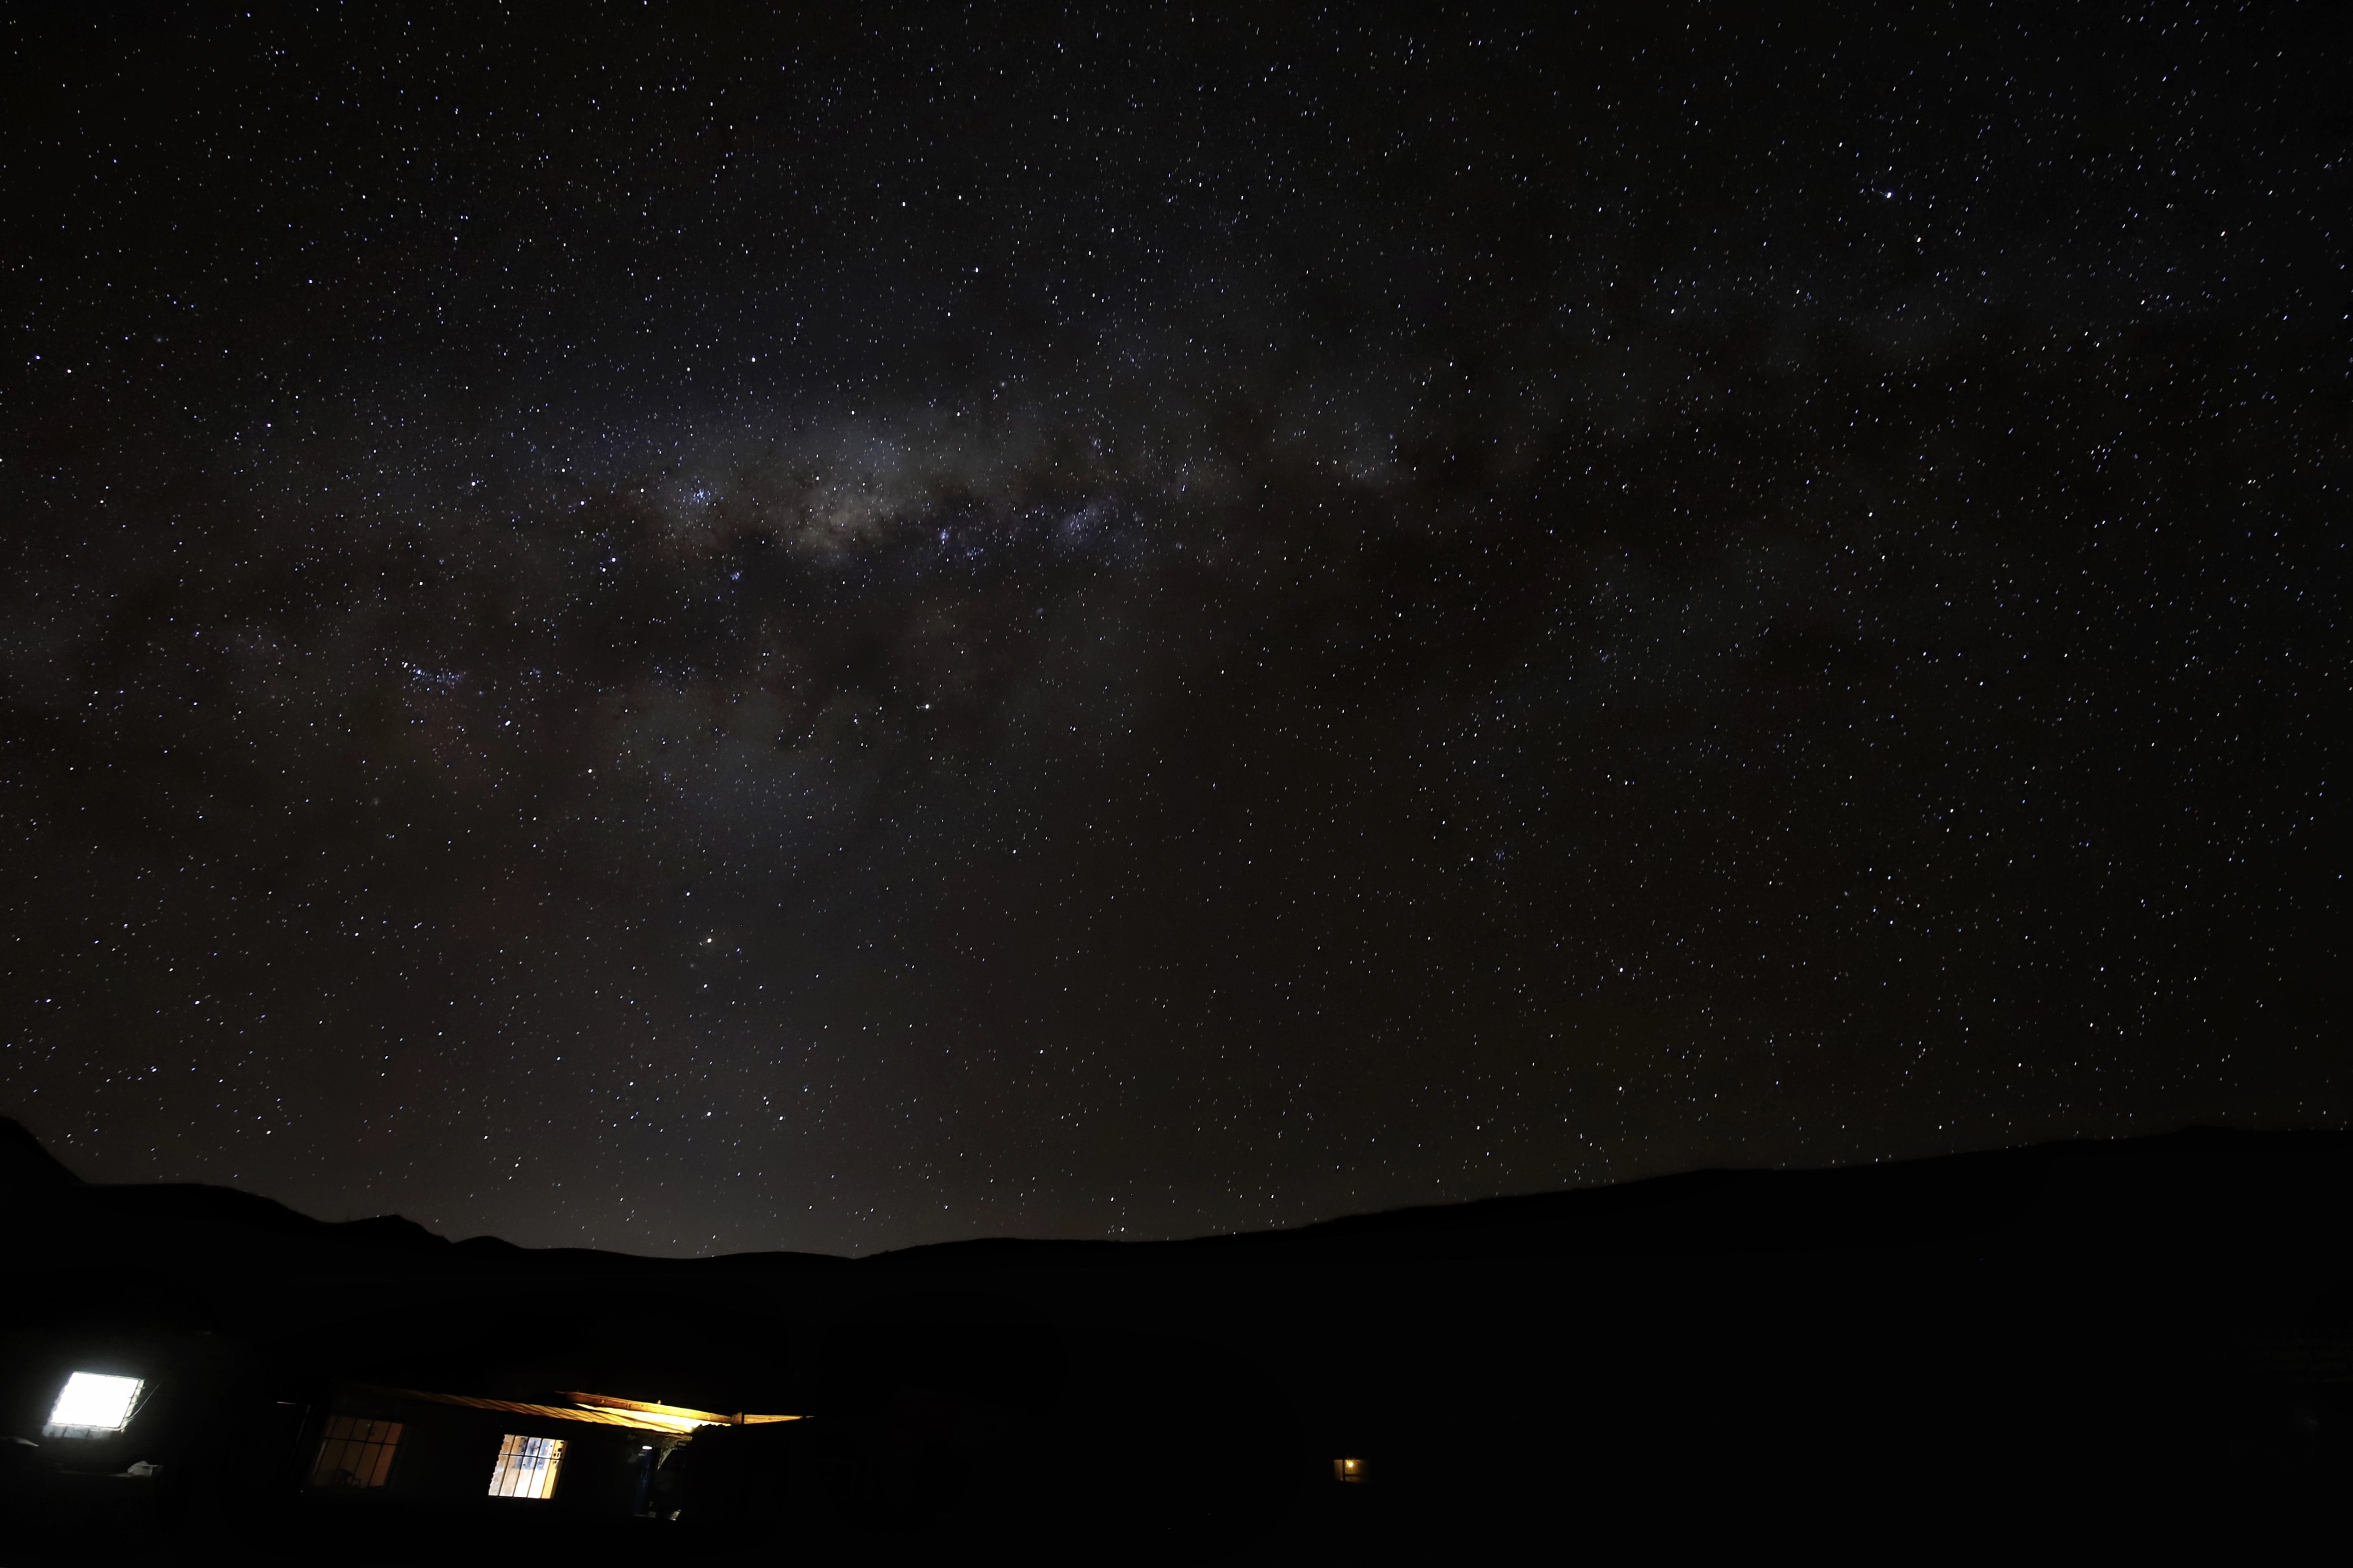 The Milky Way Bolivia, The Wanderlust Bug